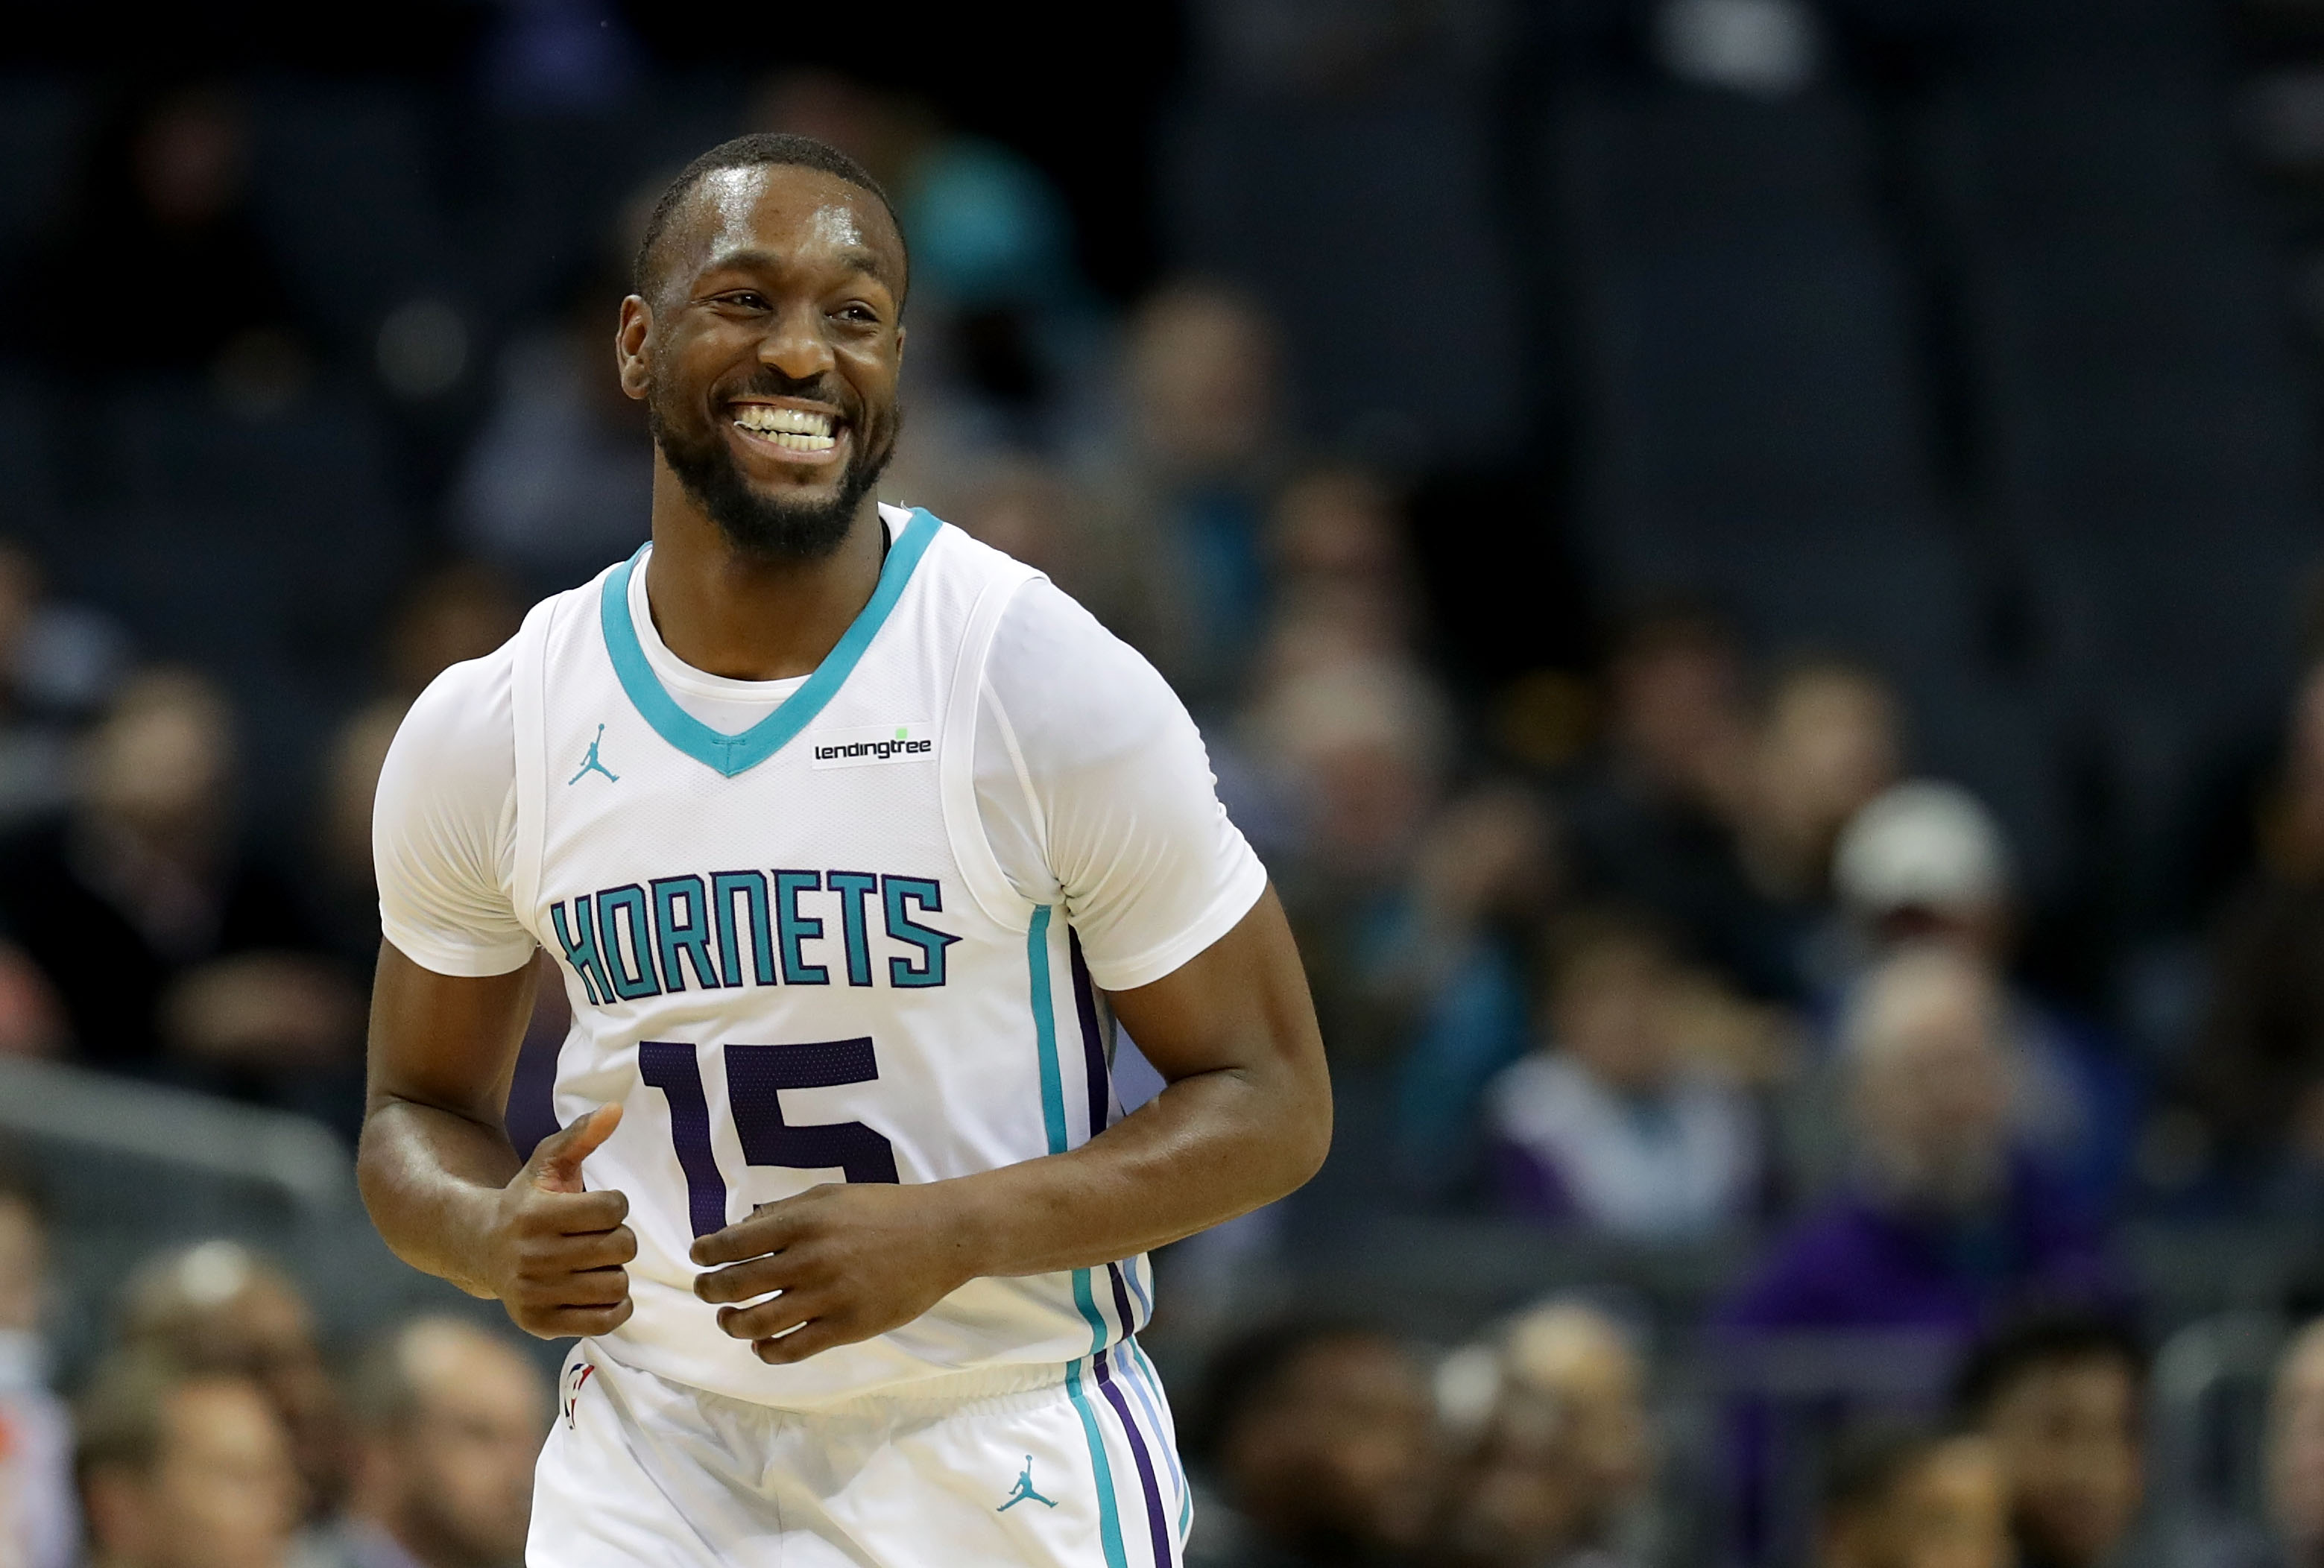 Hornets have made Kemba Walker available for trade